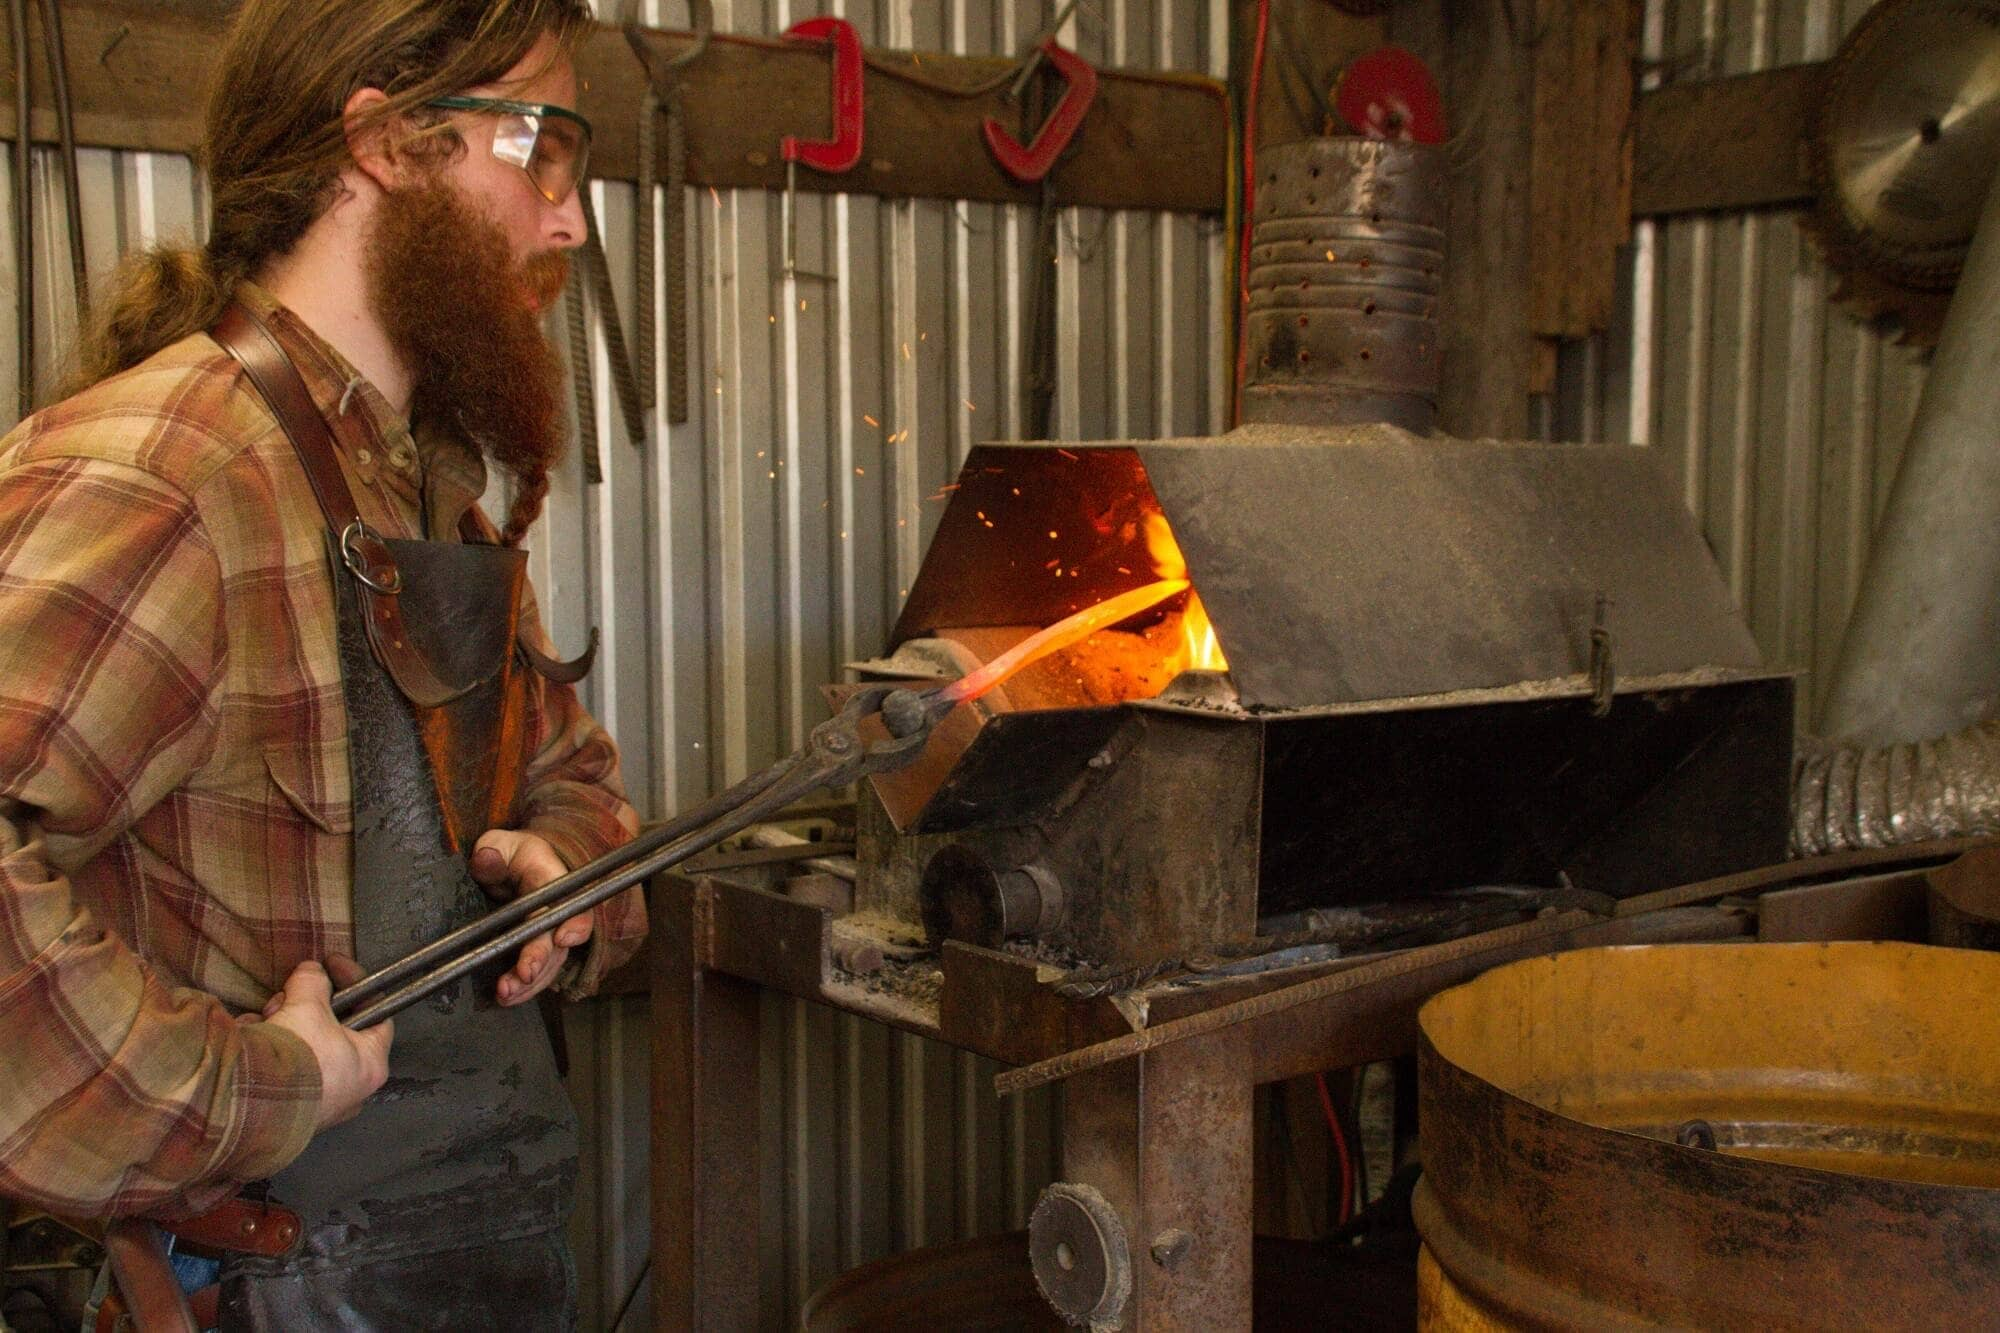 https://www.kawanti.com/wp-content/uploads/2018/11/ARS-blacksmith-working.jpg